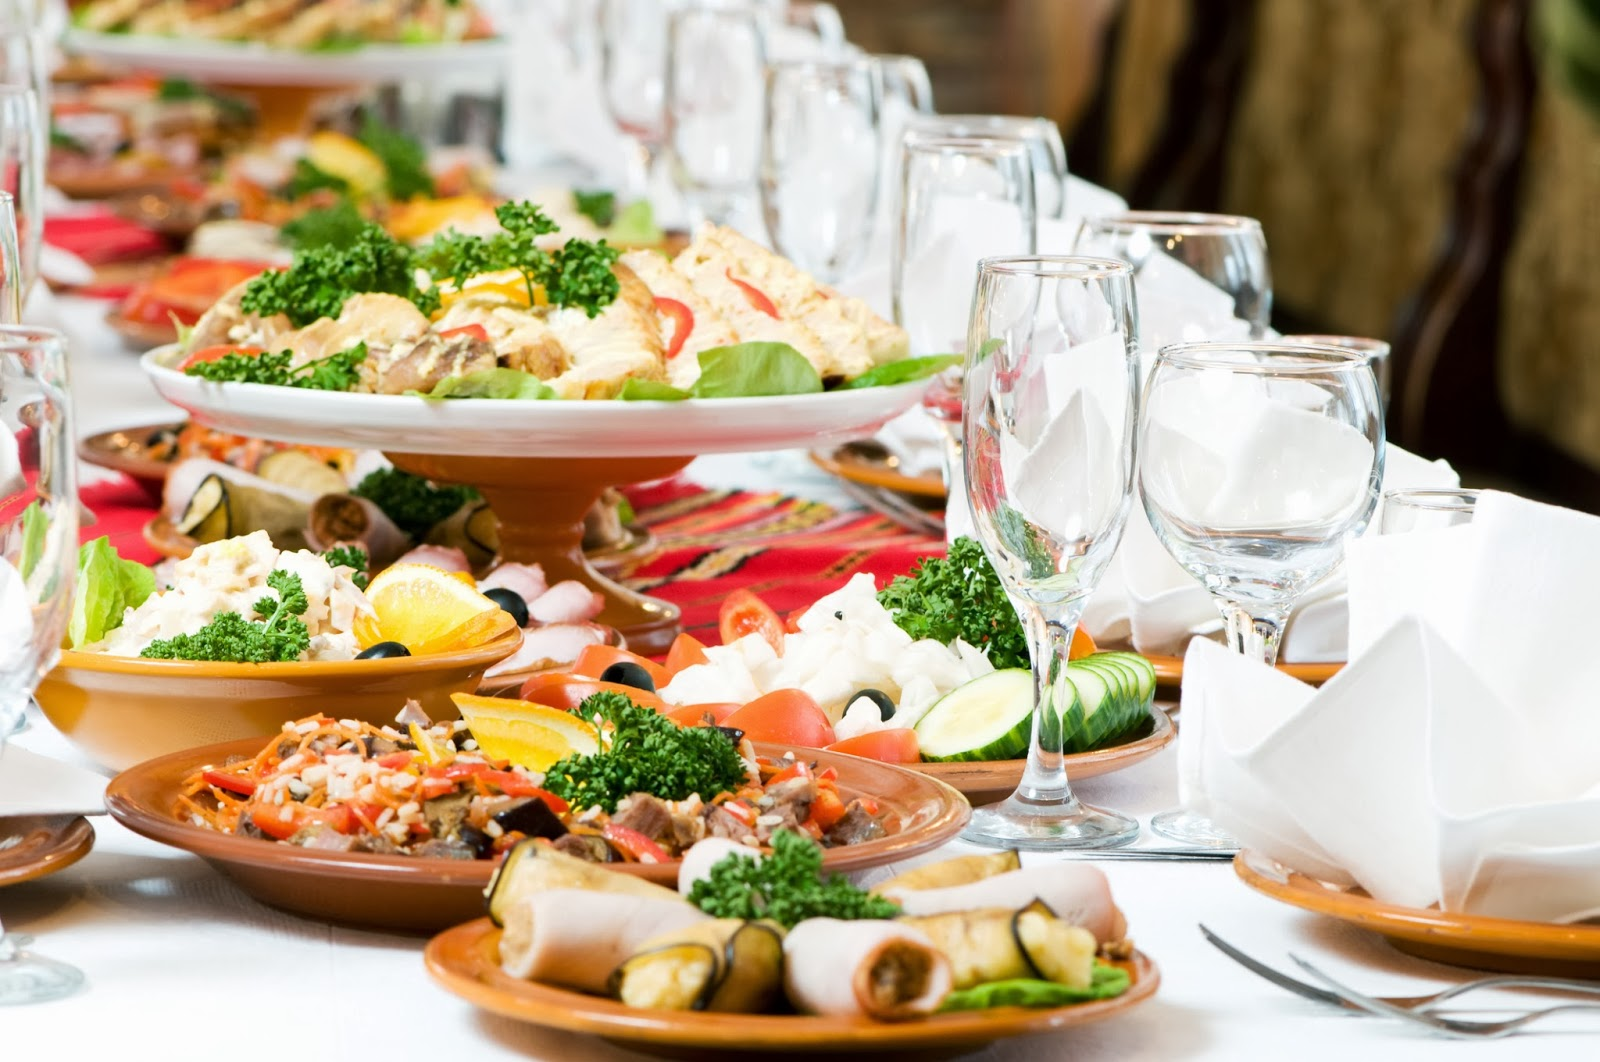 Are You Looking For A Best Catering Service Marriage Day Is Always Special And Everyone Wants To Make It Grand